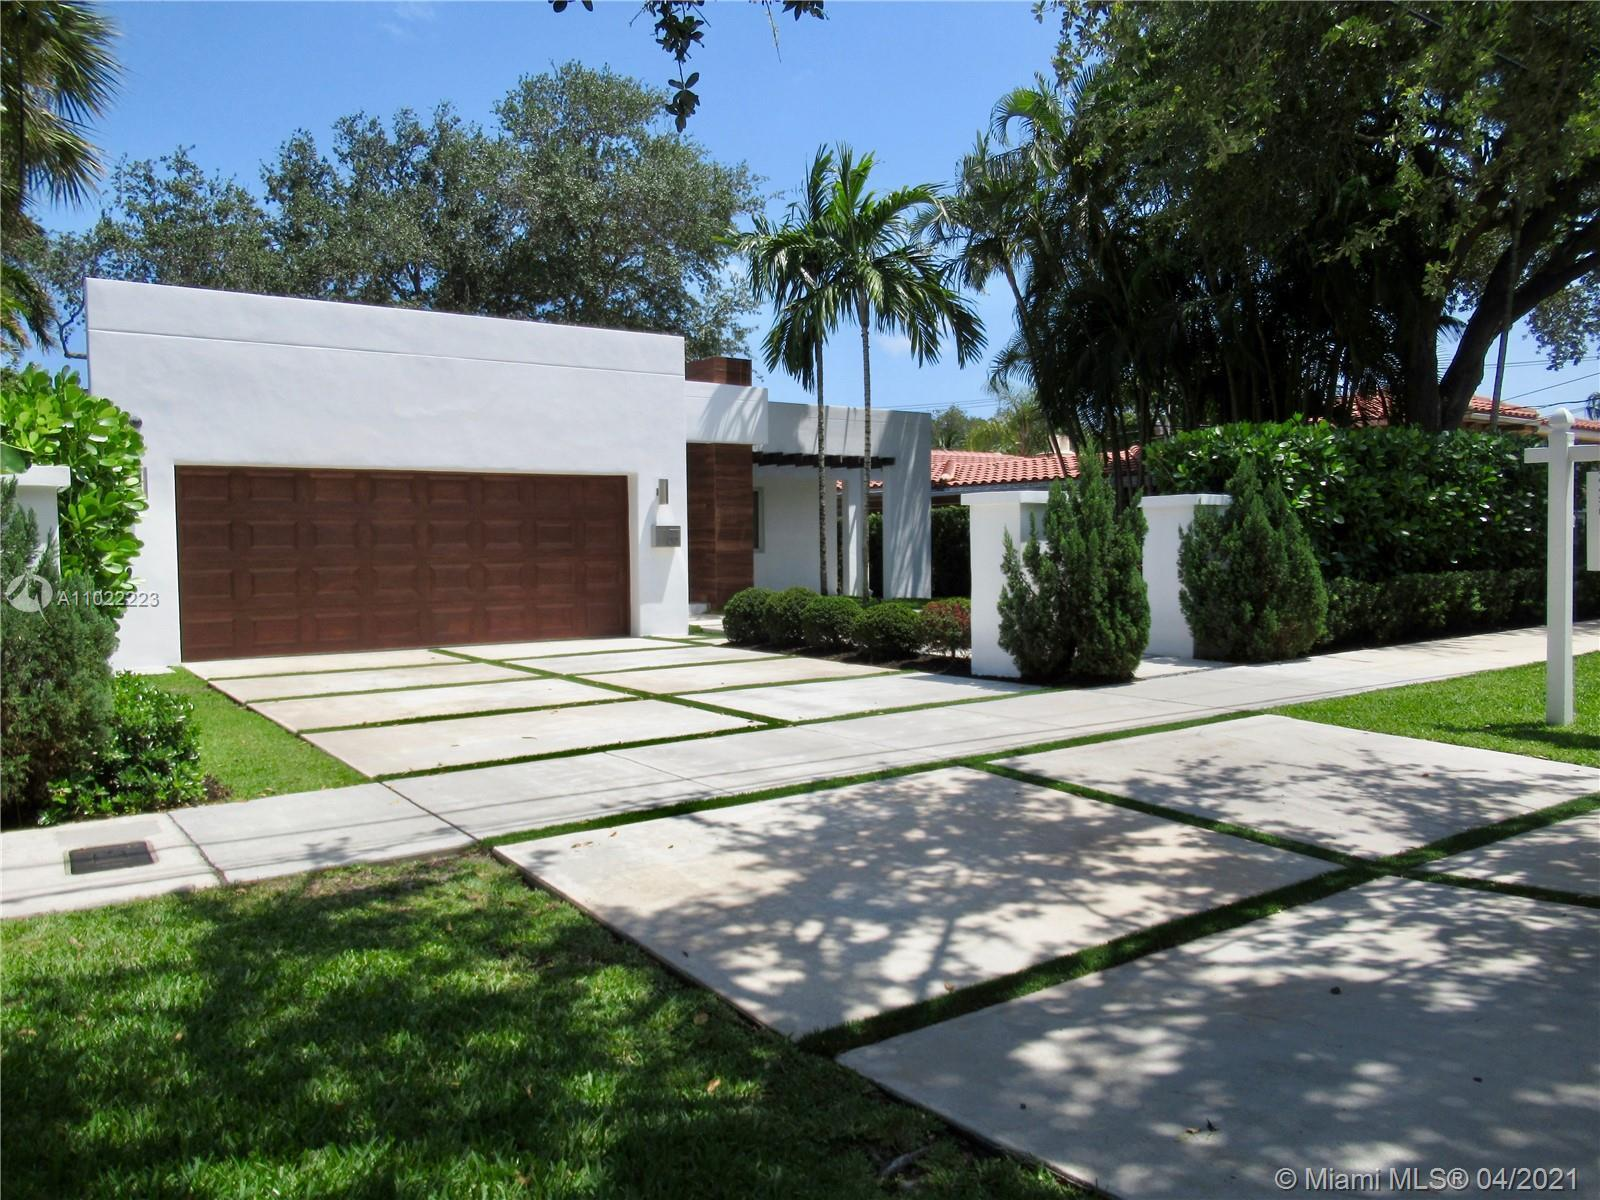 Your opportunity to own a one of a kind modern waterfront home design in the prestigious streets of